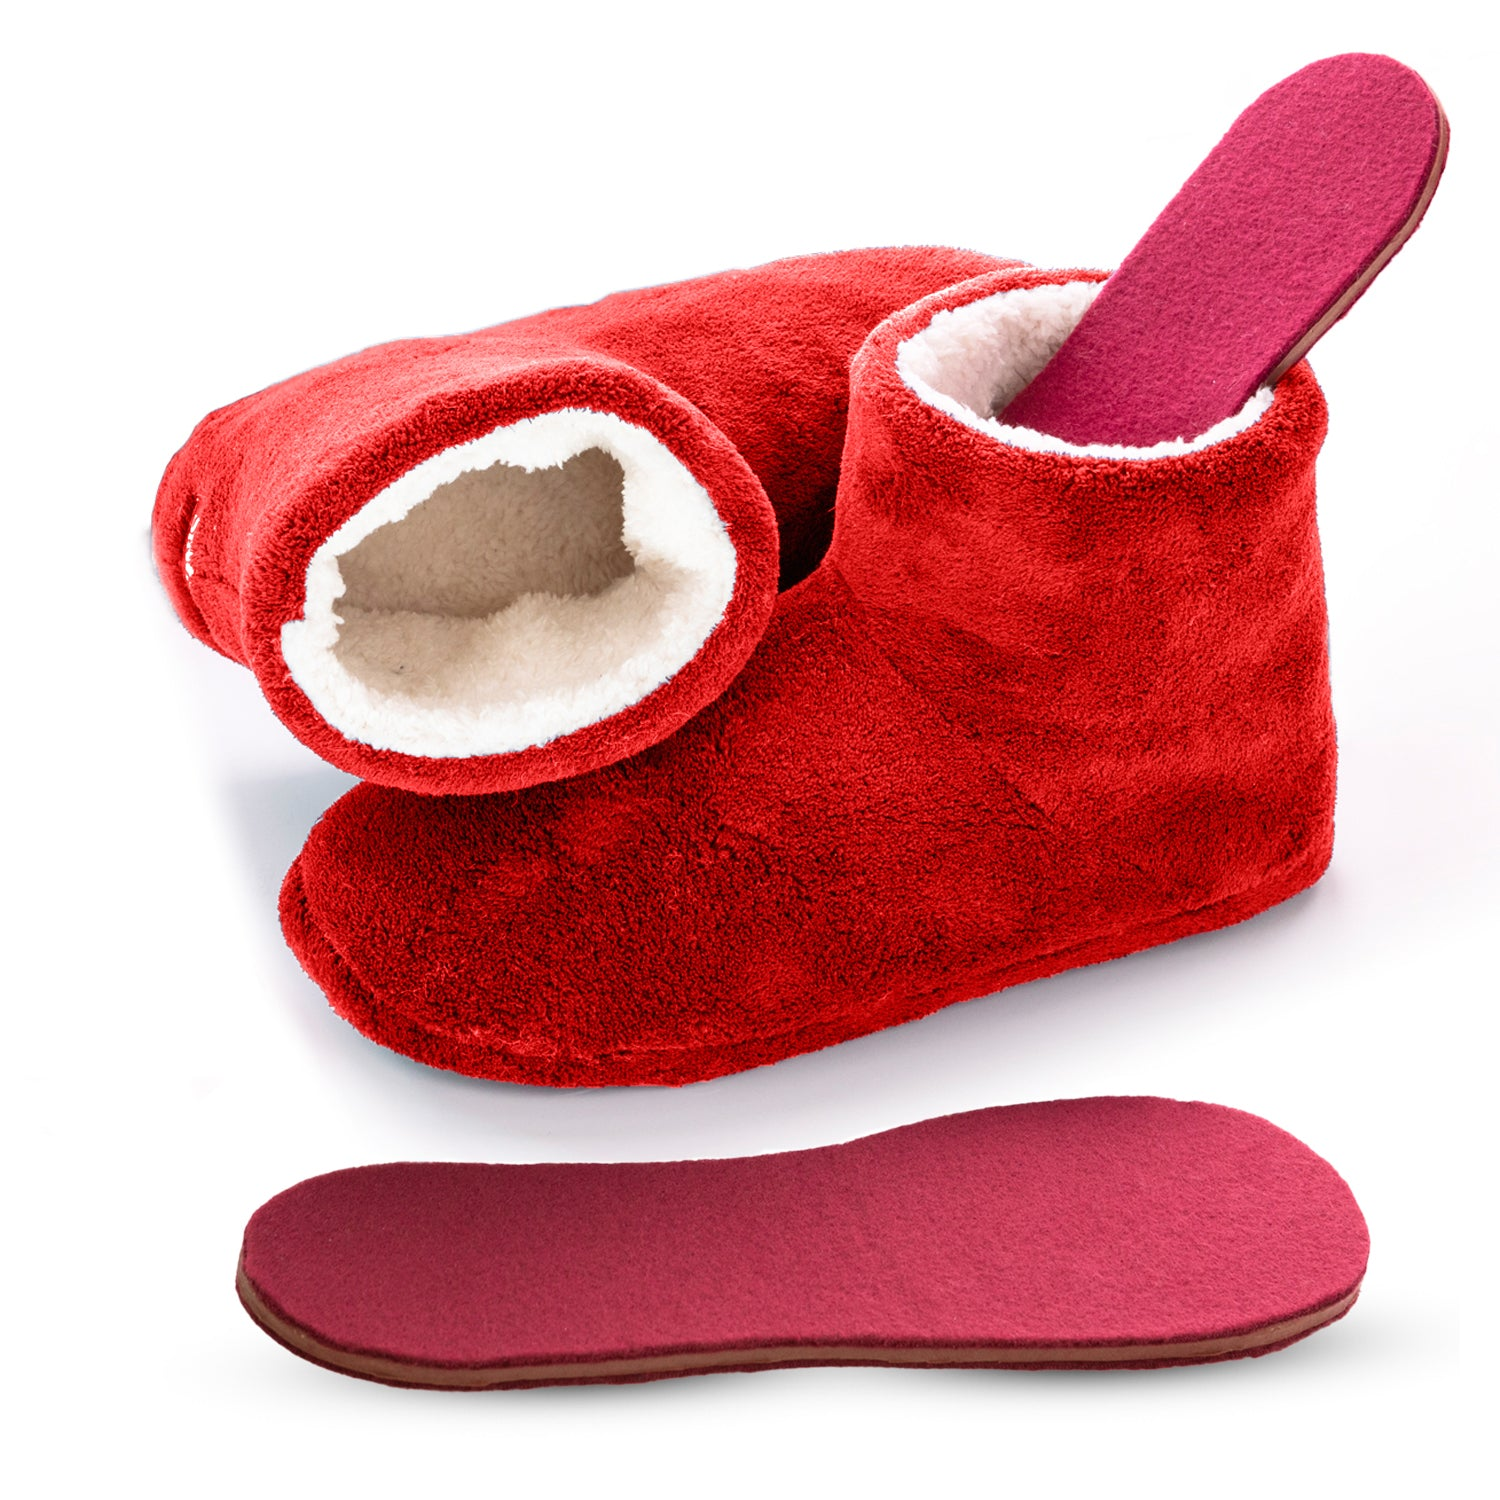 Booties with Heated Insoles